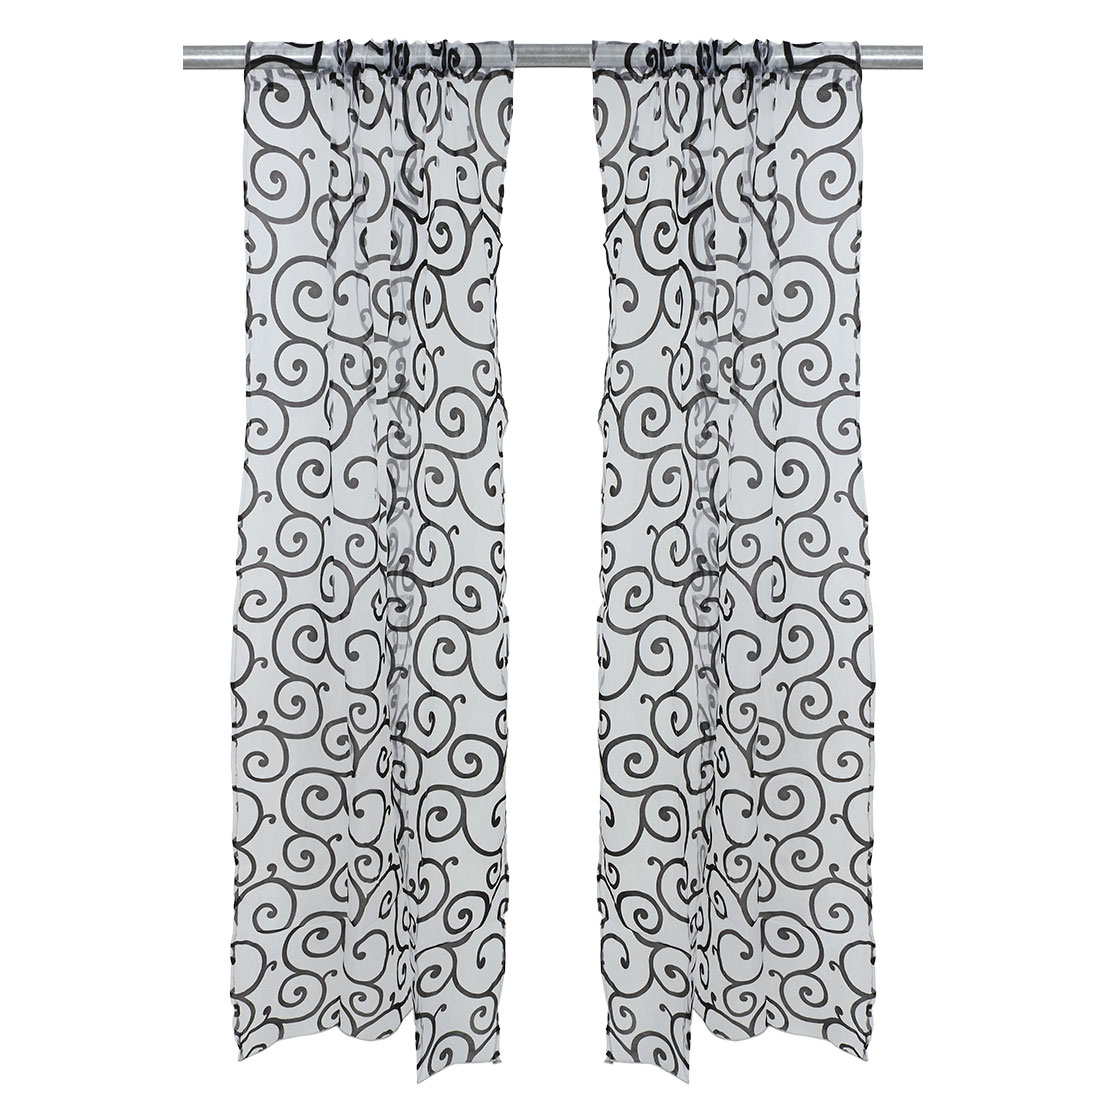 Piccocasa Home Voile Flocking Floral Print Window Sheer Tulle Curtain Black 100 x 200cm